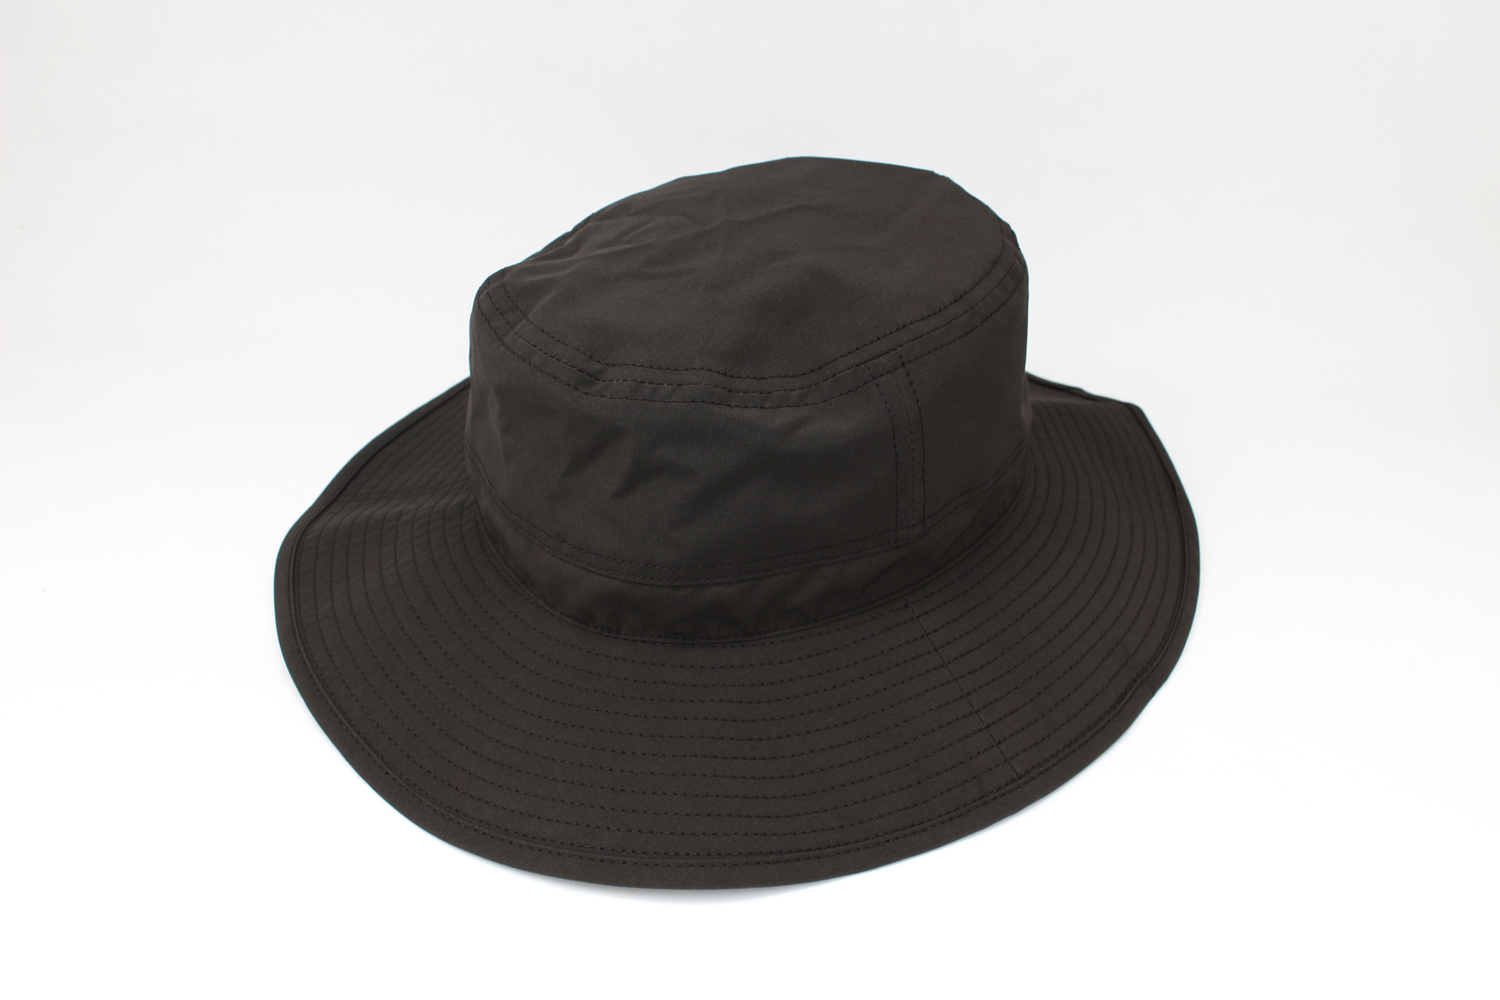 COMESANDGOES_WATER-REPELLENT-HAT-A_Col.GRAY_9000_1